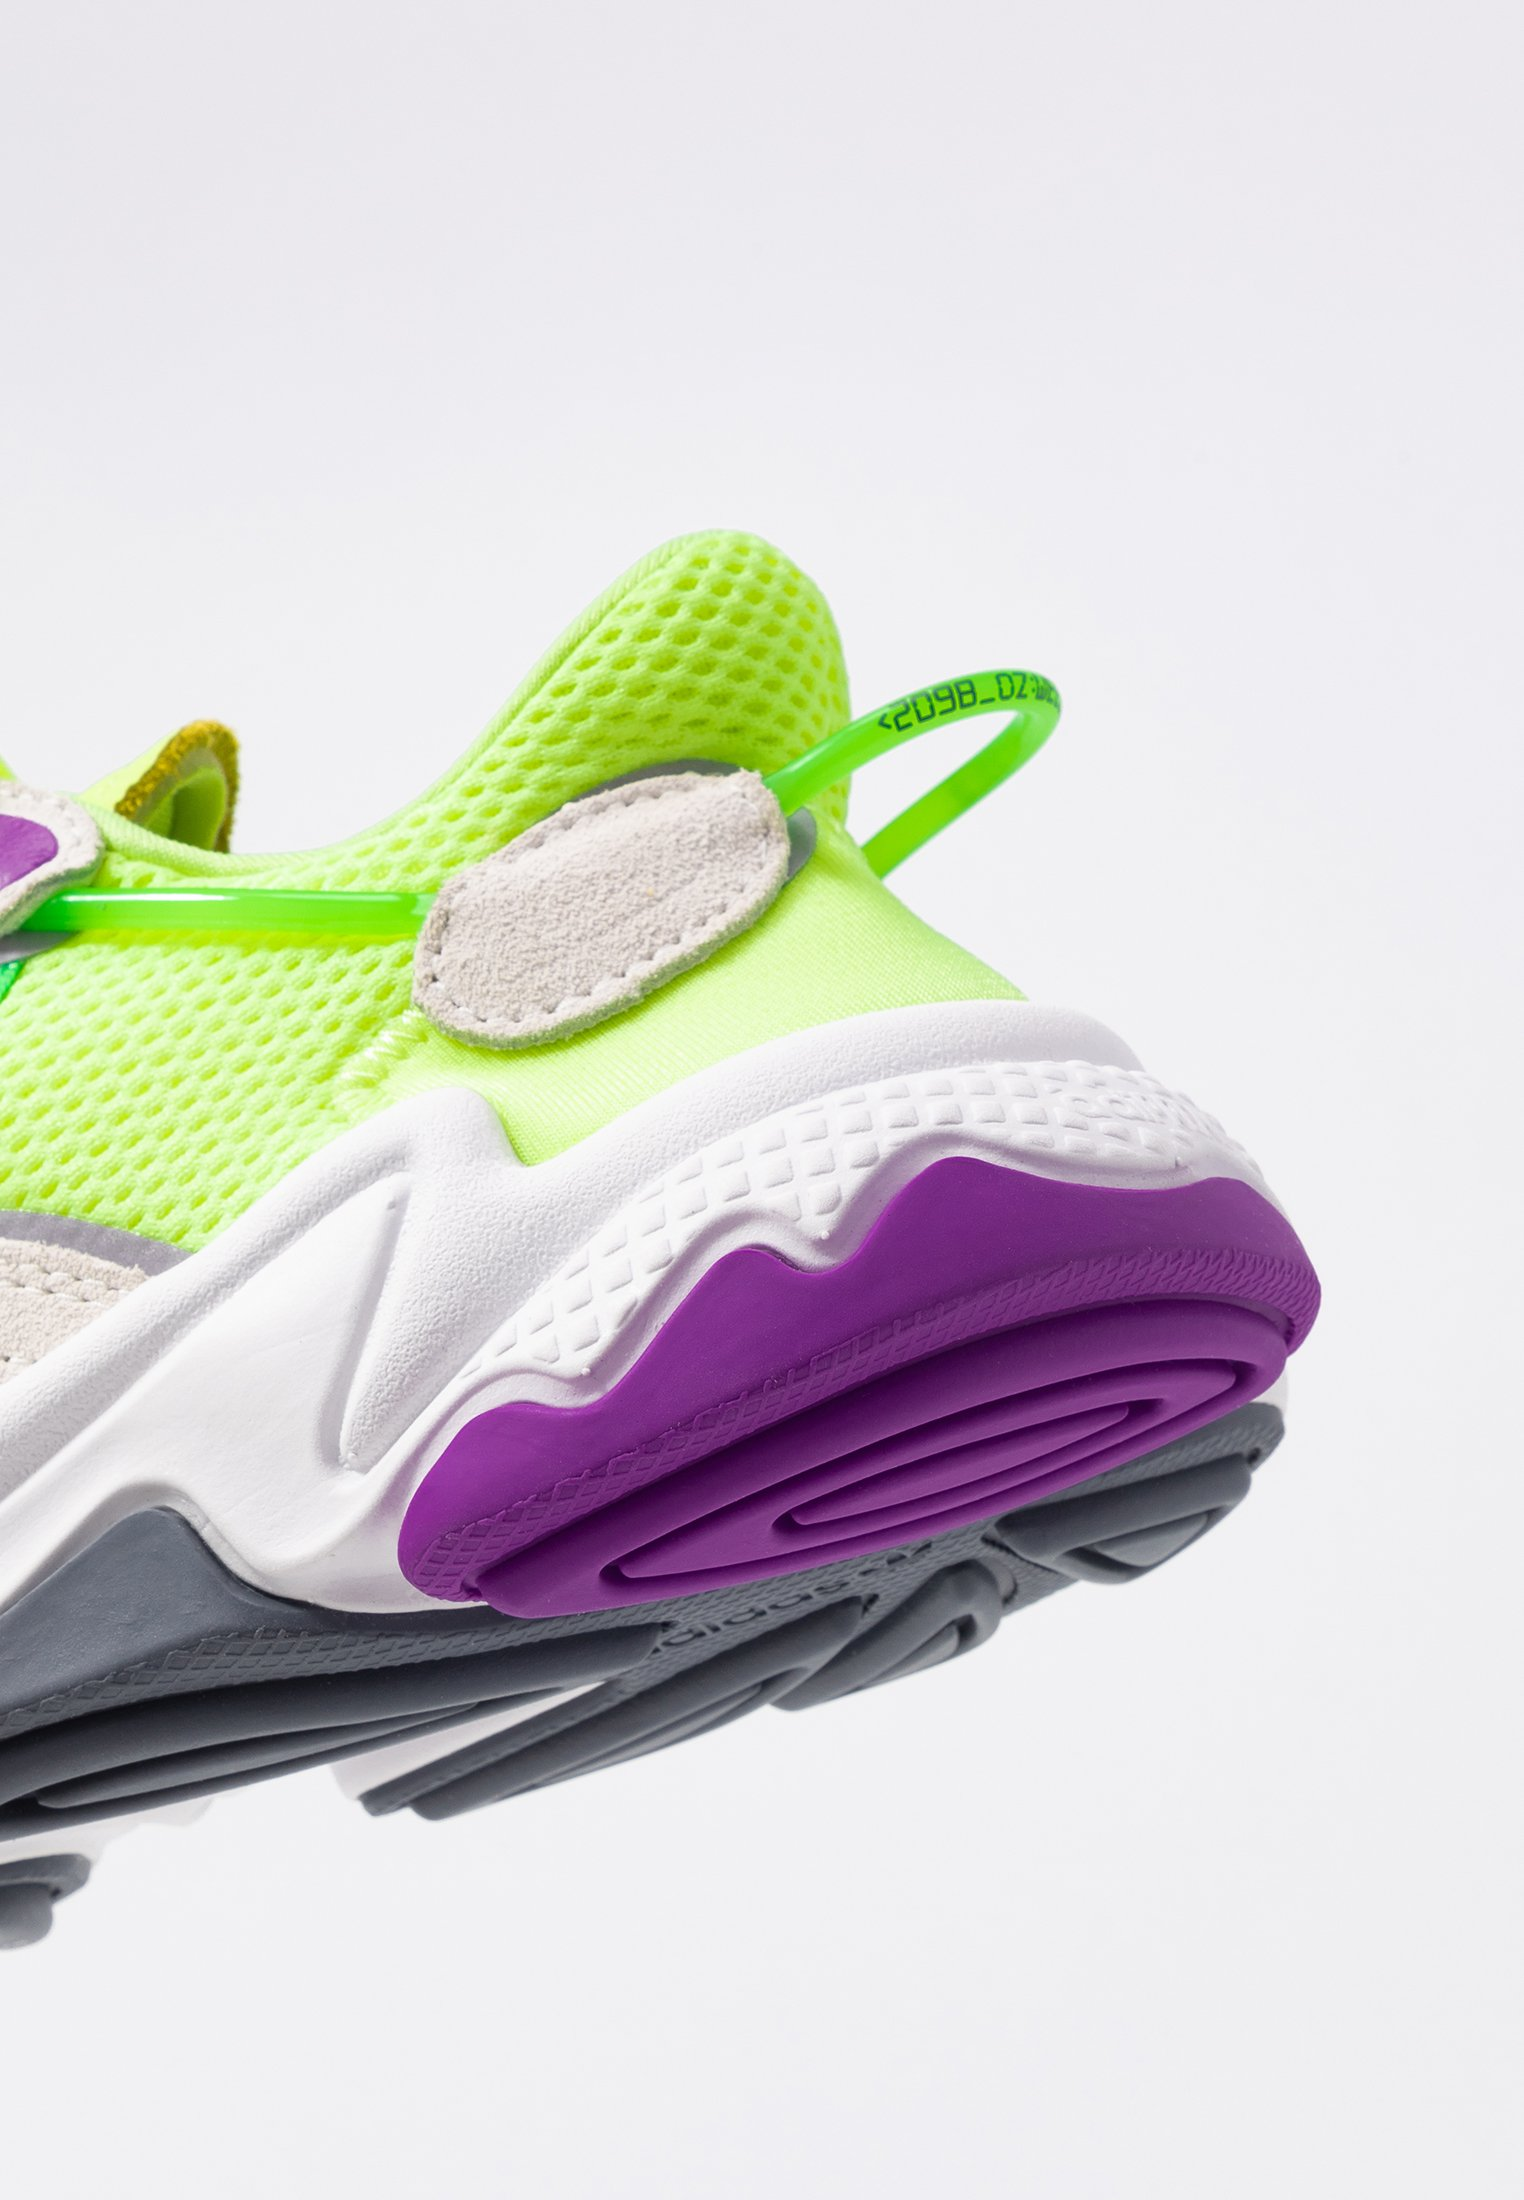 Adidas Originals Ozweego Adiprene+ Running-style Shoes - Sneakers Hi-res Yellow/orchid Tint/shock Lime